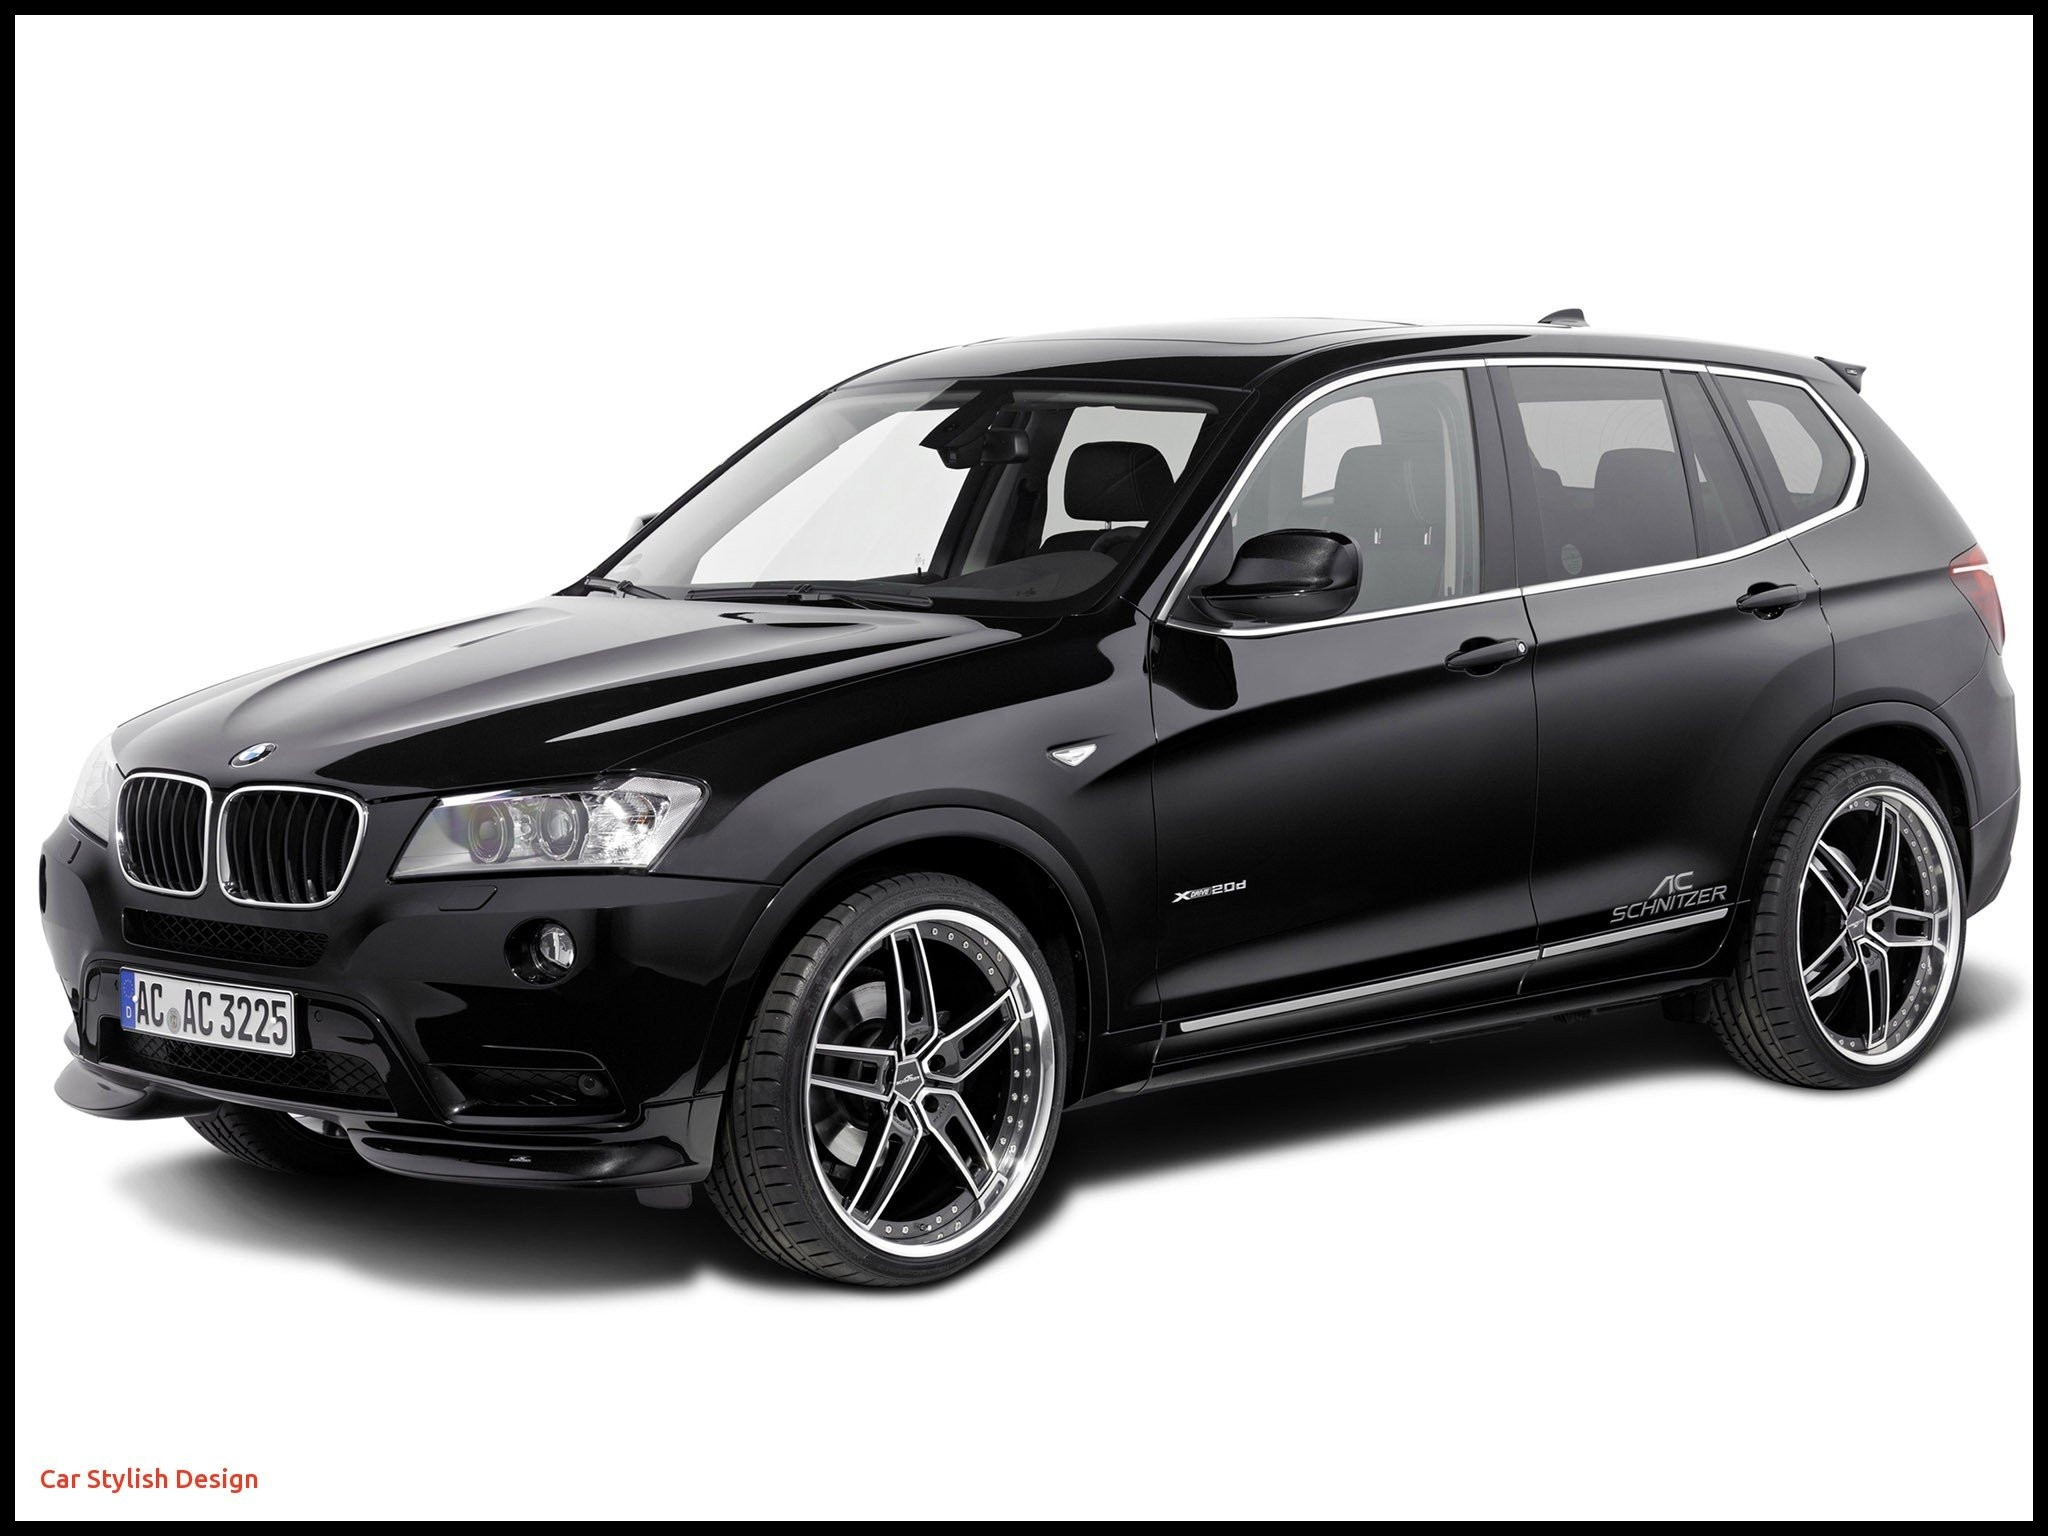 Used Bmw Part Unique Used Bmw X3 Best Bmw X3 2 0d Technical Details History S